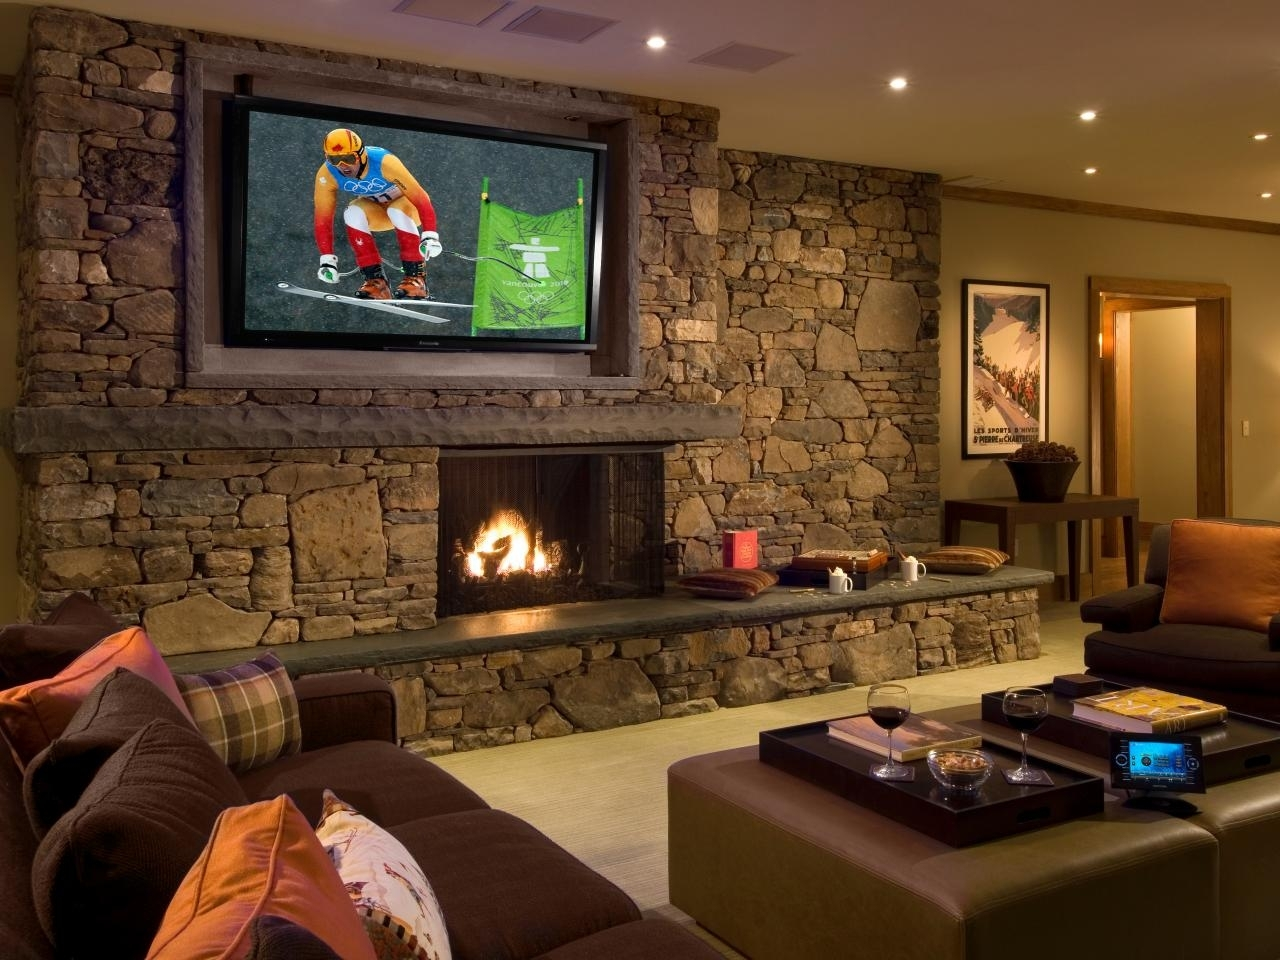 Basement Home Theaters And Media Rooms: Pictures, Tips & Ideas | Hgtv Intended For Latest Wall Accents For Media Room (View 5 of 15)